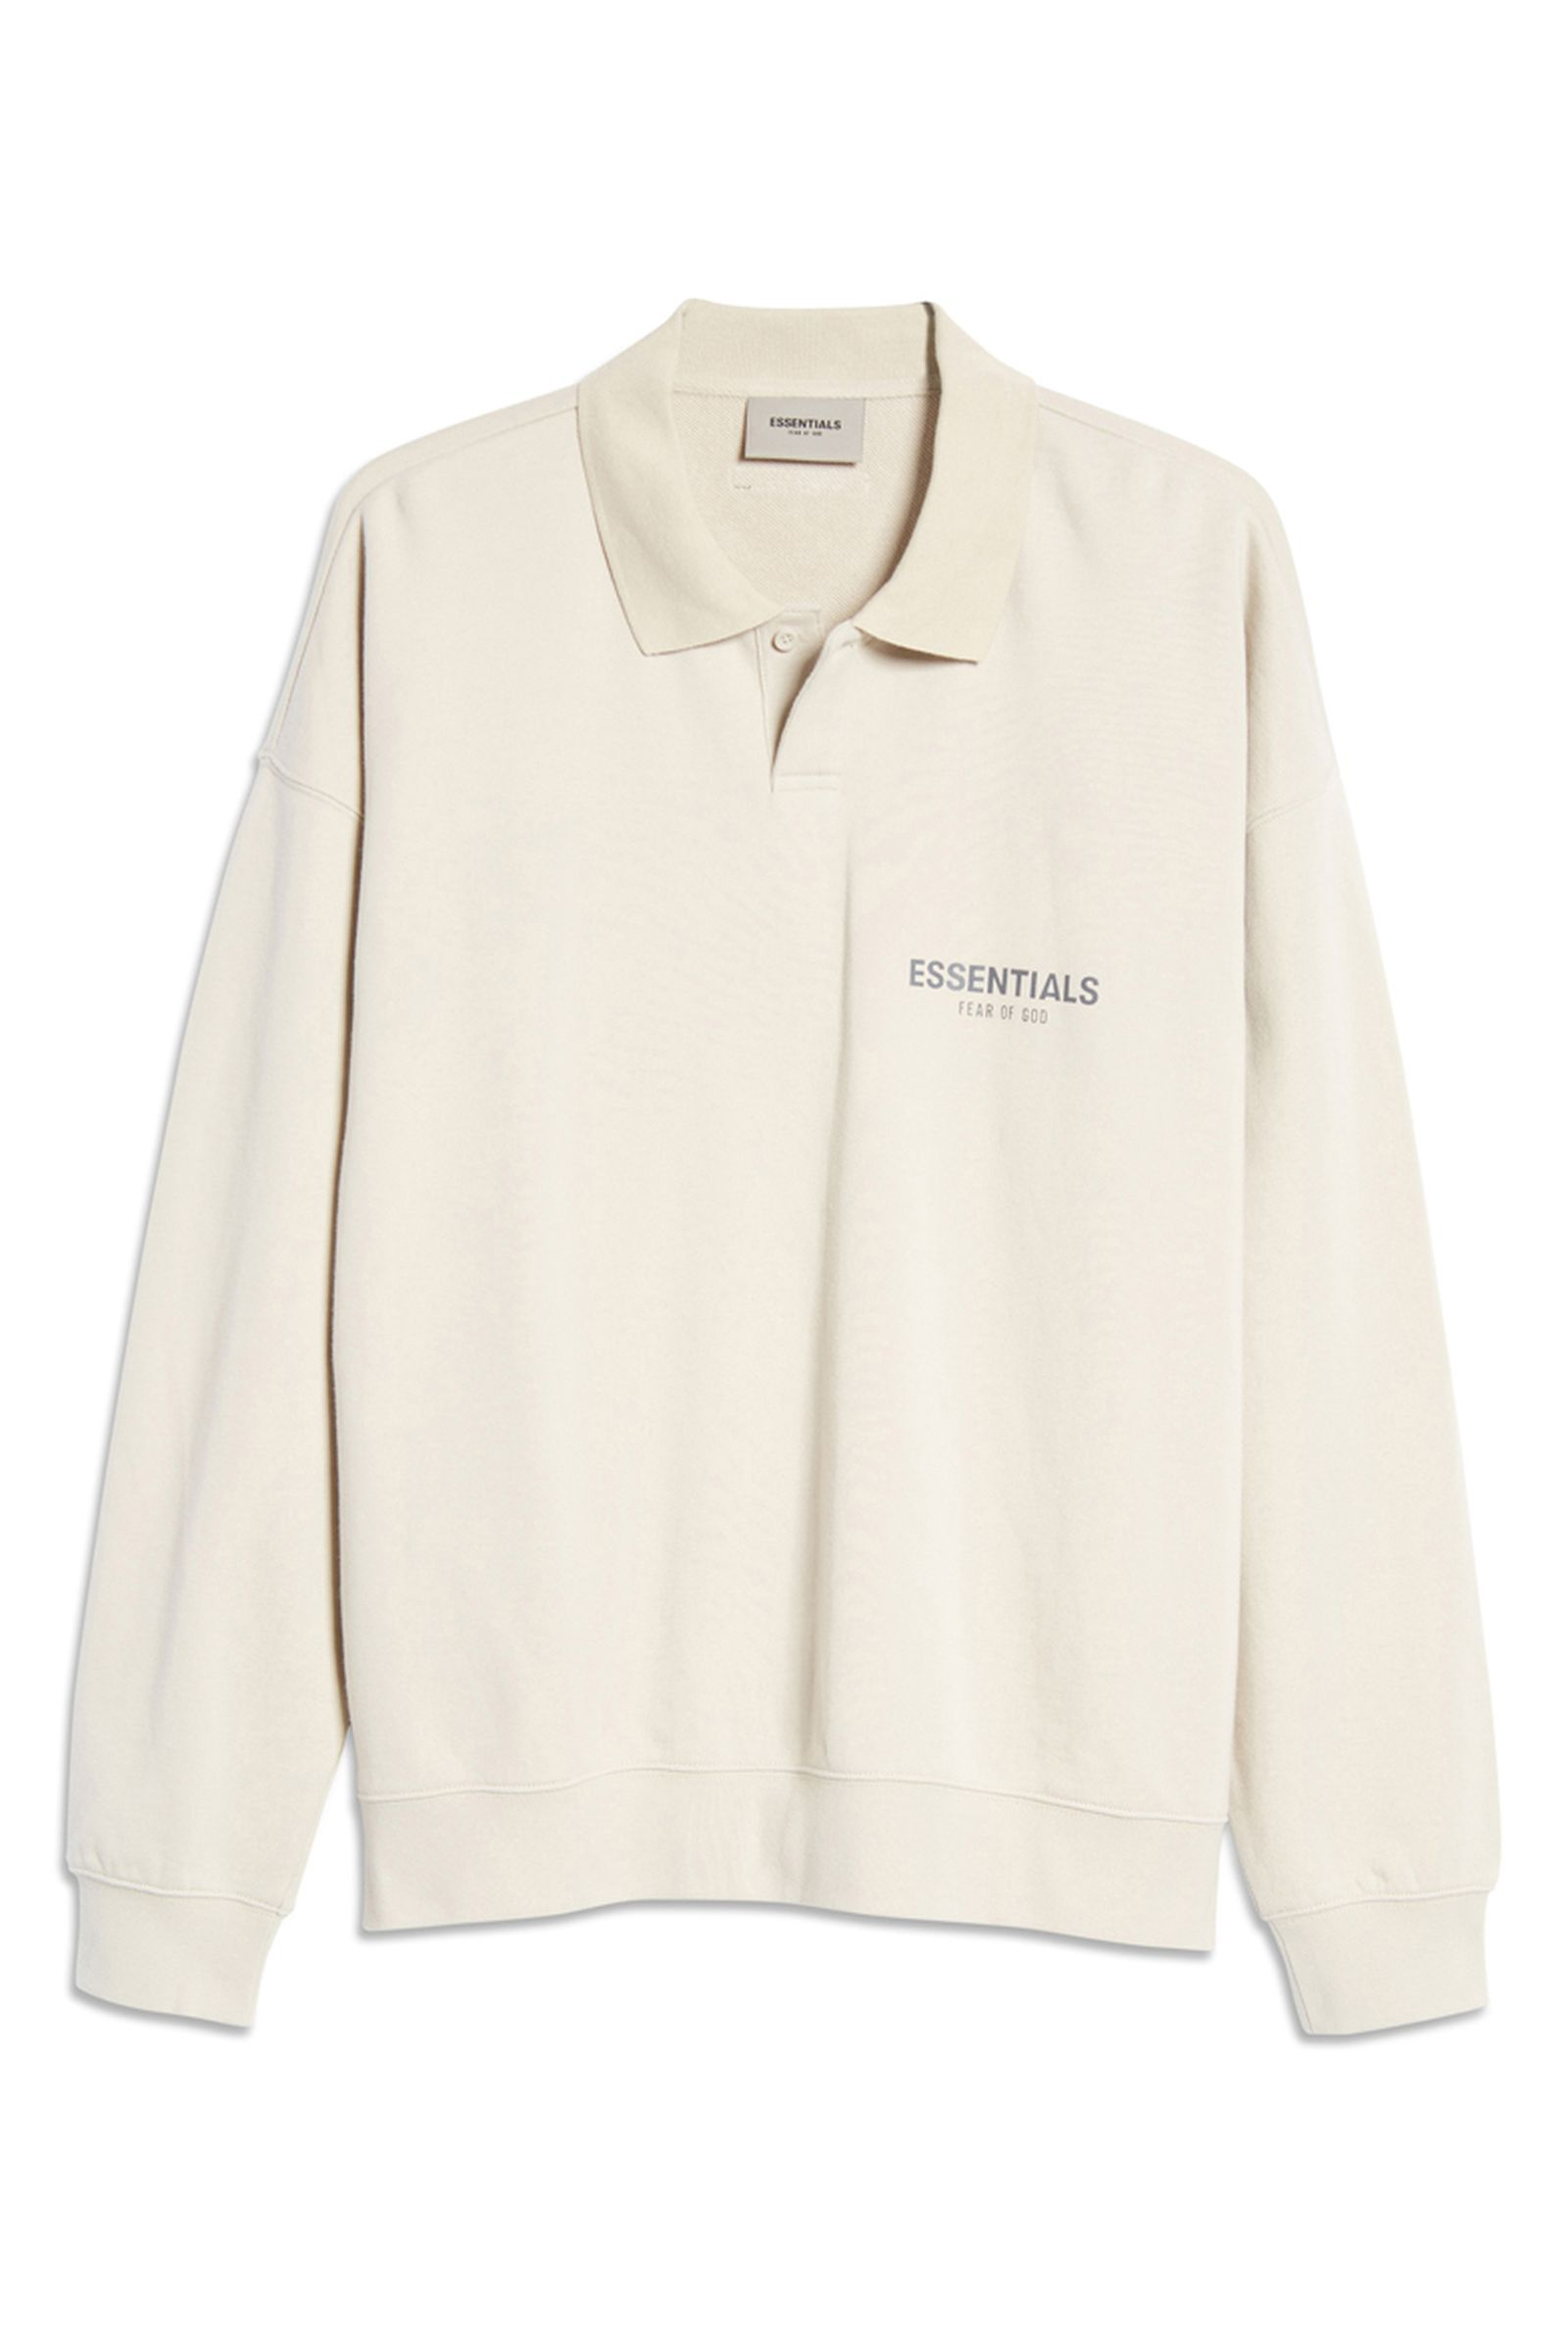 fear of god essentials nordstrom exclusive (9)